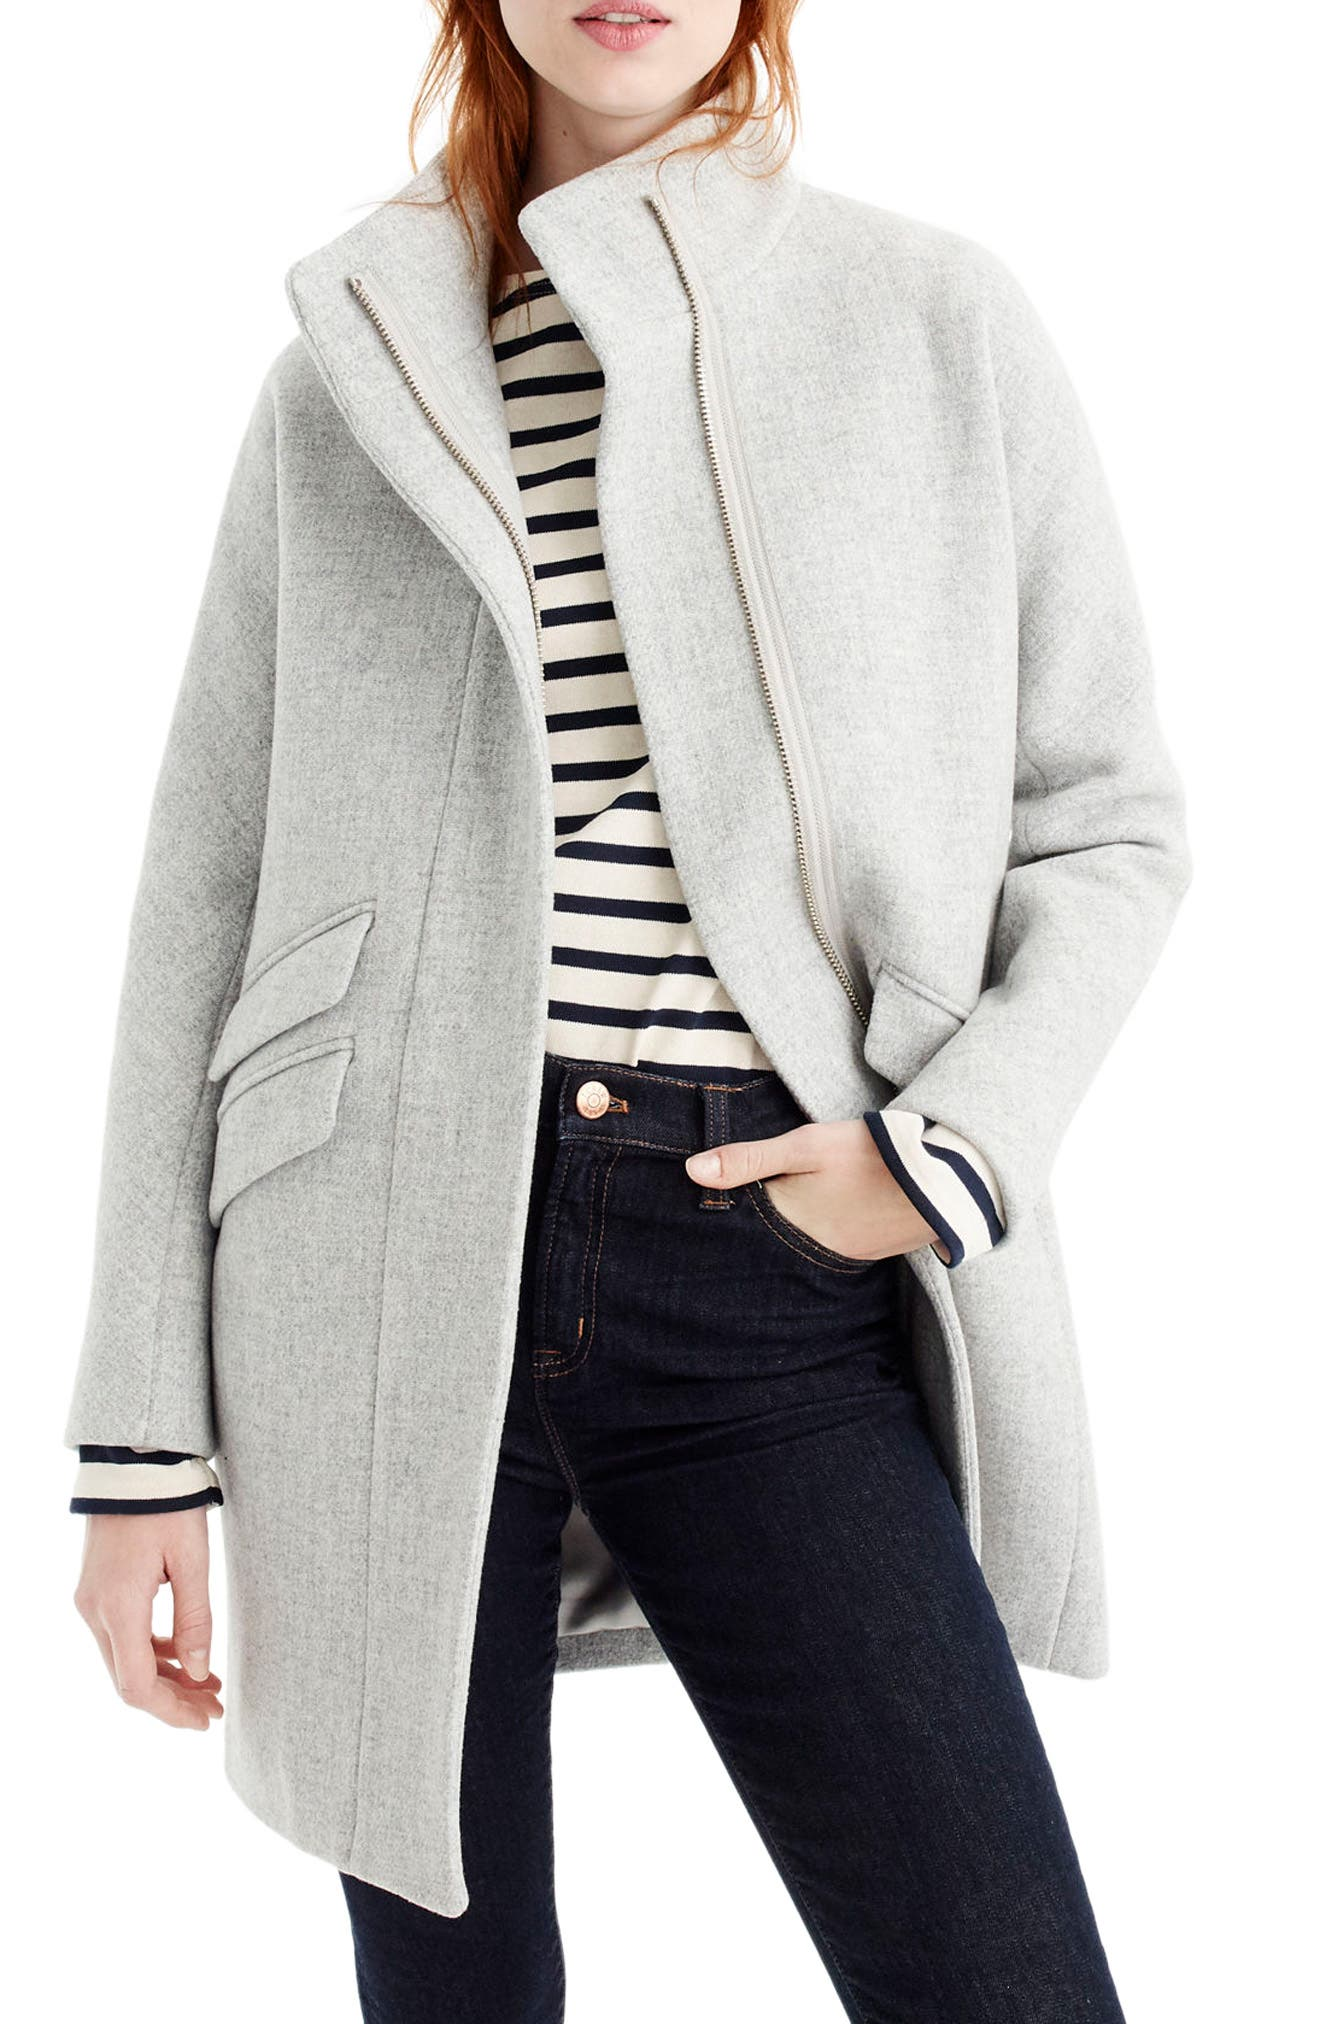 Main Image - J.Crew Stadium Cloth Cocoon Coat (Regular & Petite)